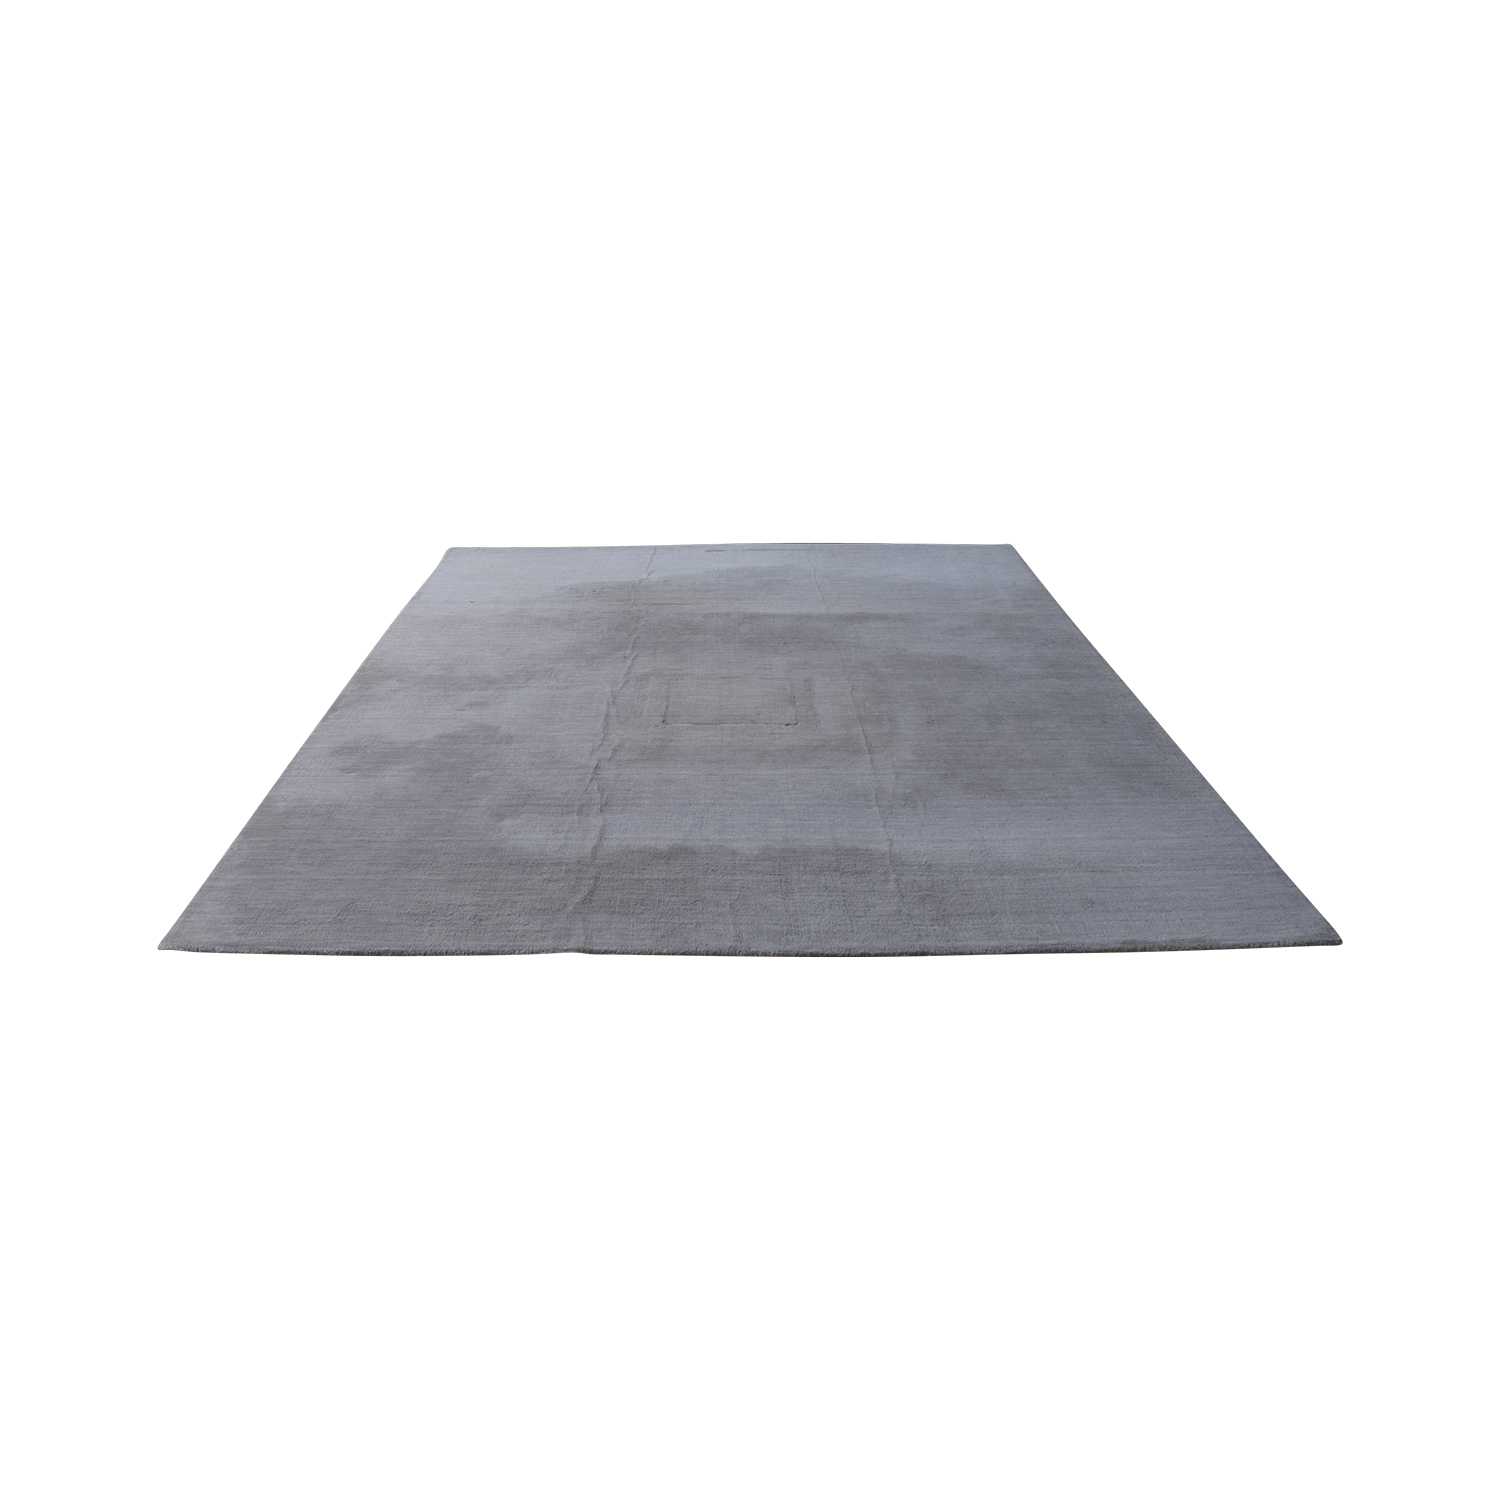 Feizy Rugs Grey Area Rug / Rugs